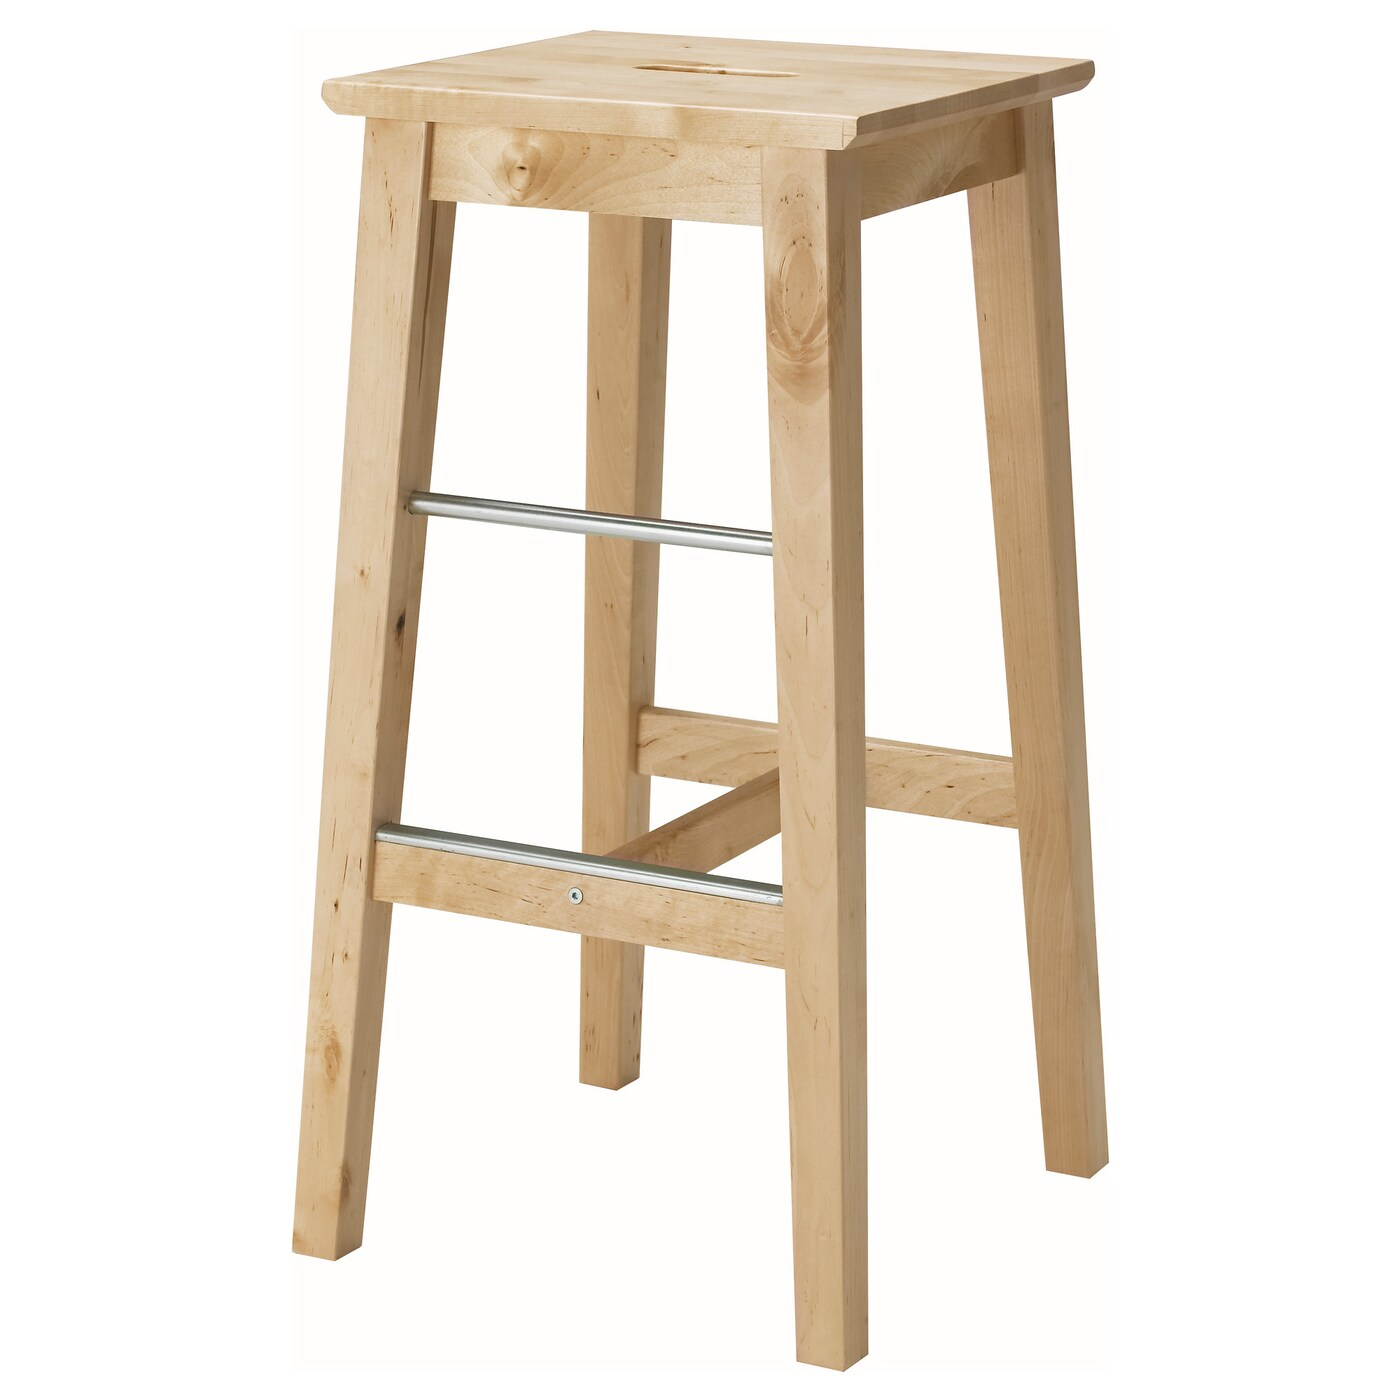 Bar Stool Chair Bar Stools And Chairs Ikea Ireland Dublin